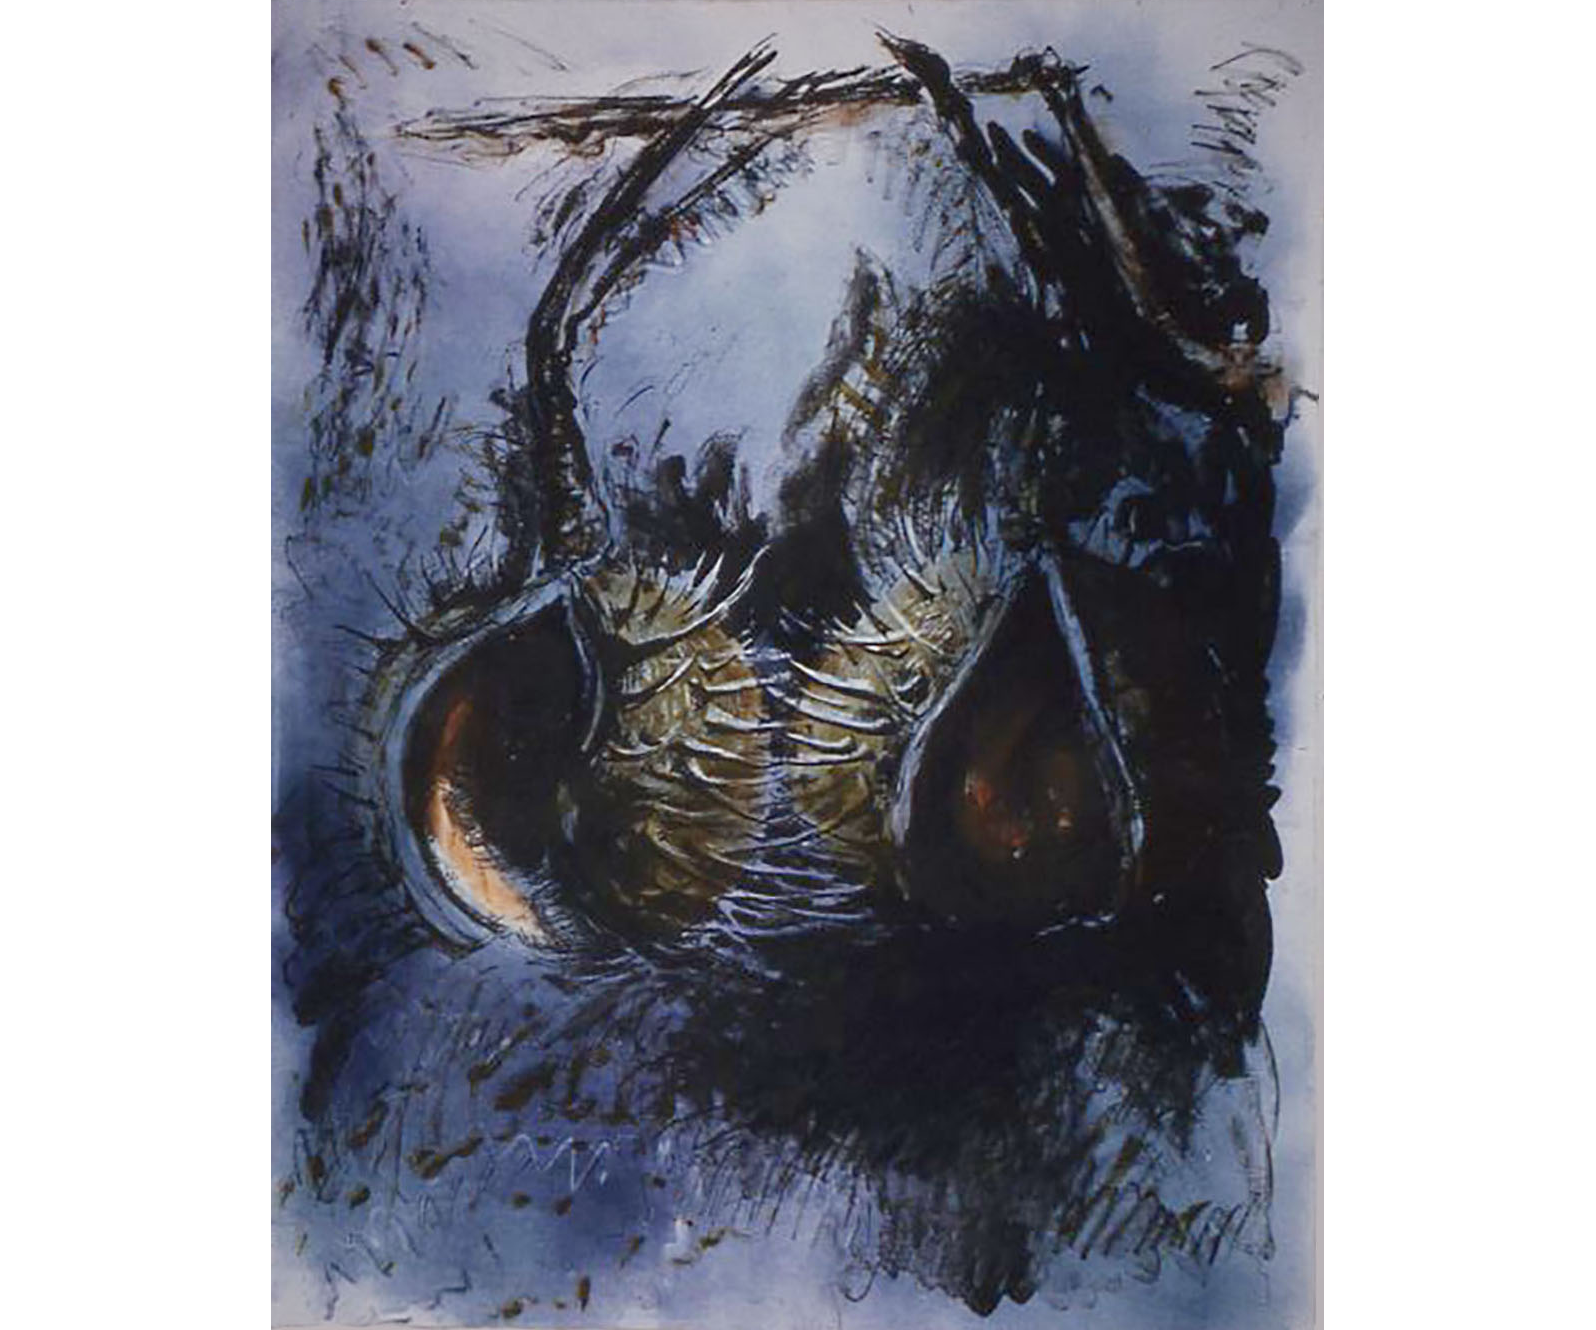 Pair of Horse Chestnuts/Blue, 1998, Lithograph with Monotype, 30 x 22